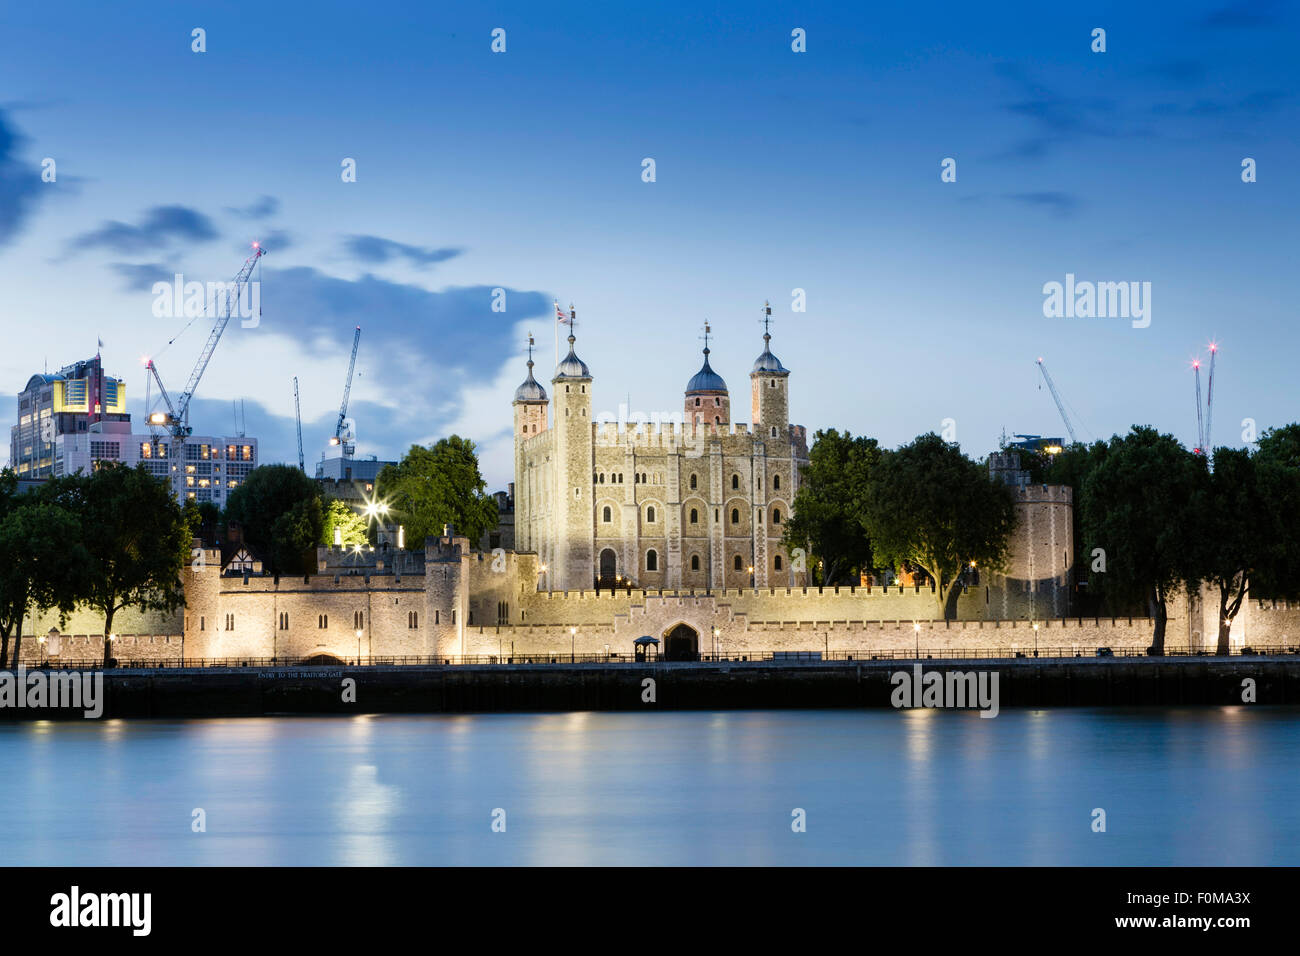 La Tour de Londres, Londres, Angleterre Photo Stock